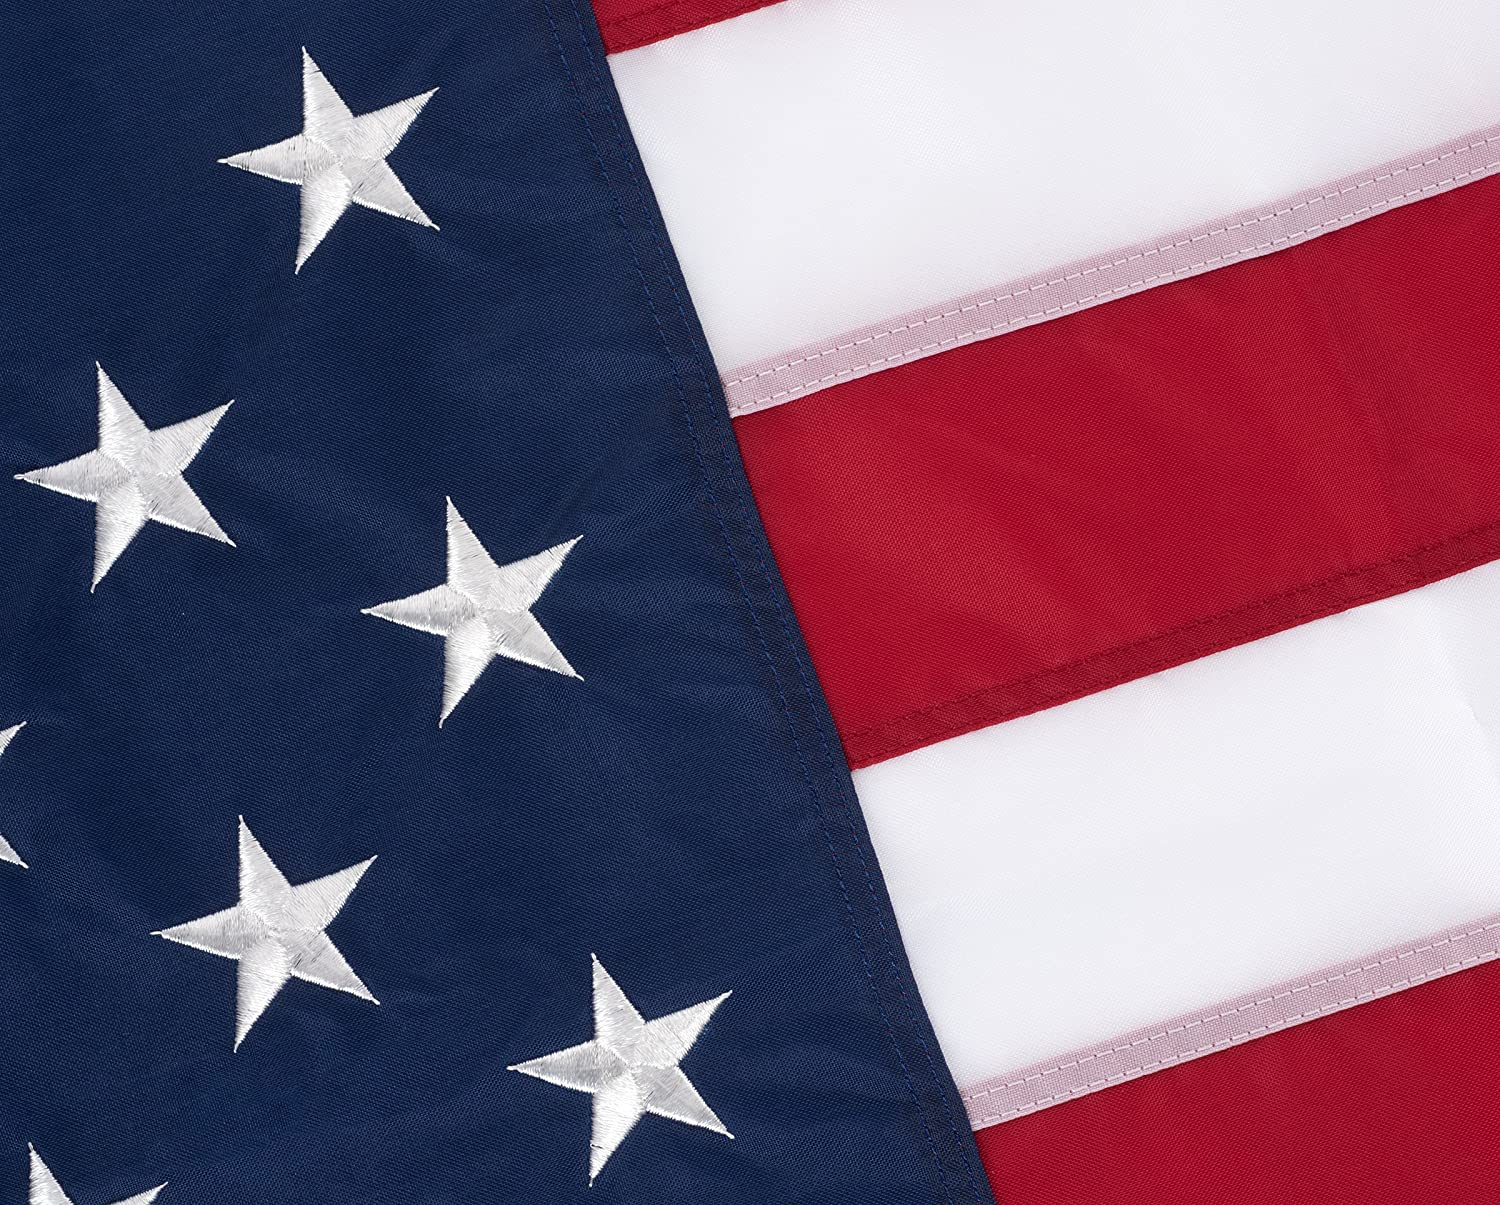 Amazon vet mart american flag embroidered stars and stripes amazon vet mart american flag embroidered stars and stripes 3x5 feet garden outdoor publicscrutiny Choice Image